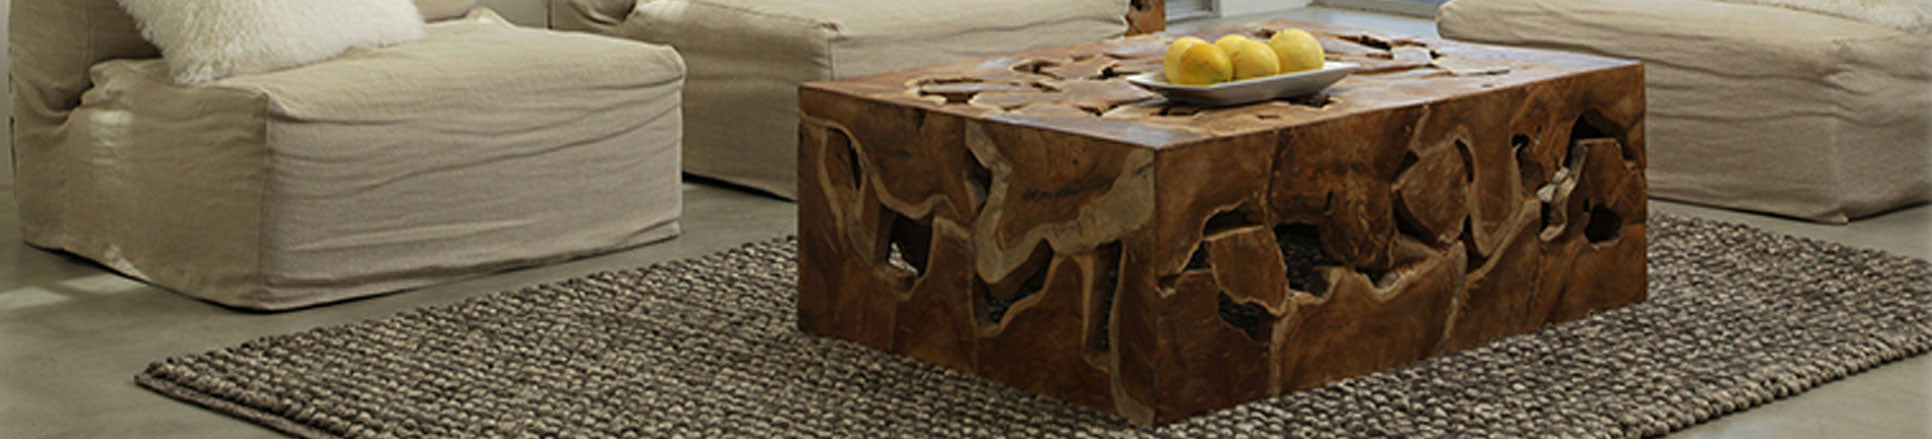 Coffee Tables San Diego Finest Quality Coffee End Tables Skylars